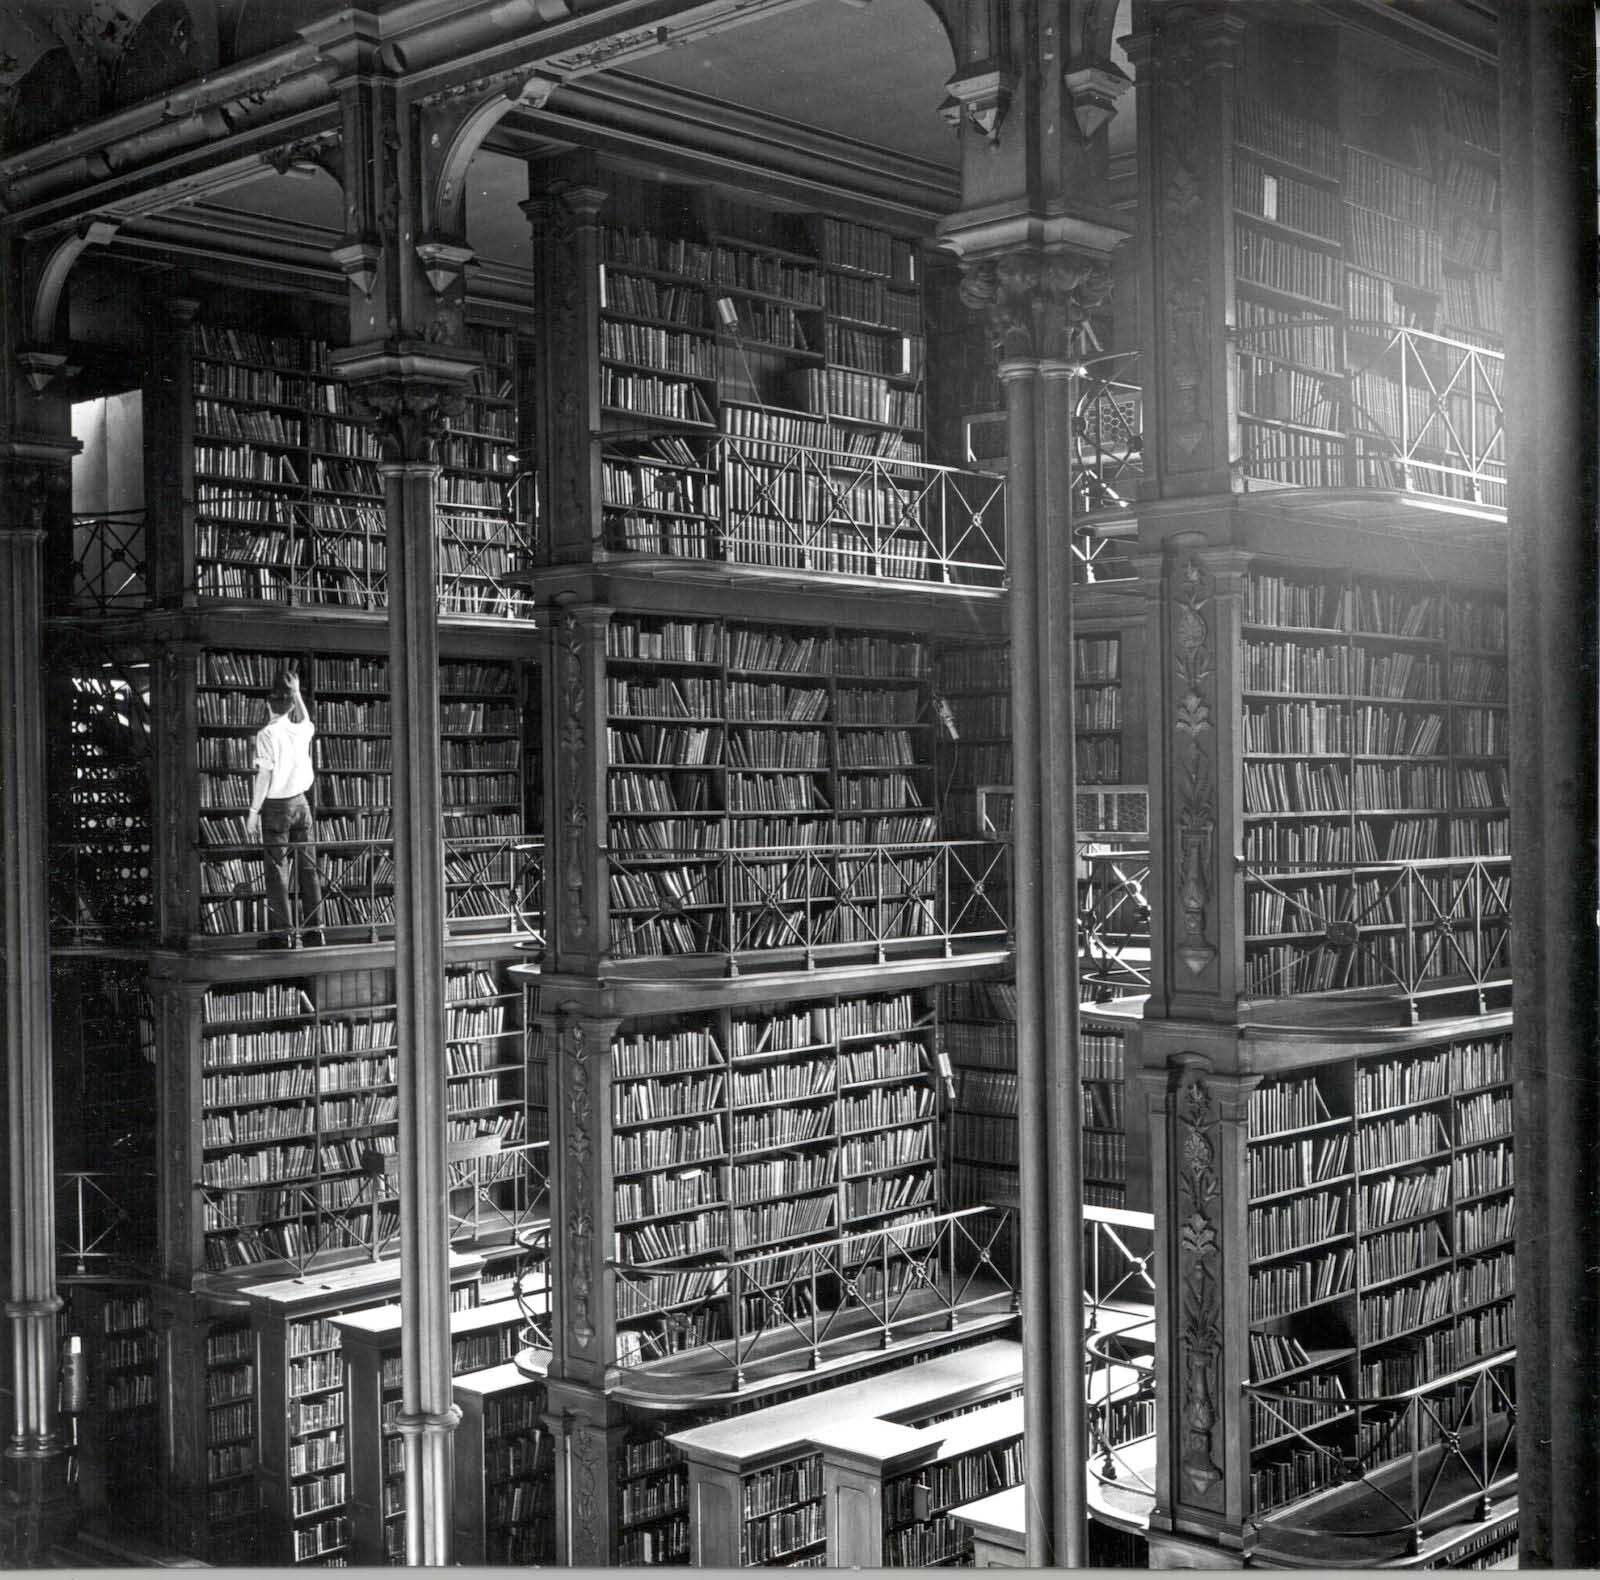 The Old Cincinnati Library before being demolished, 1874-1955.  Image